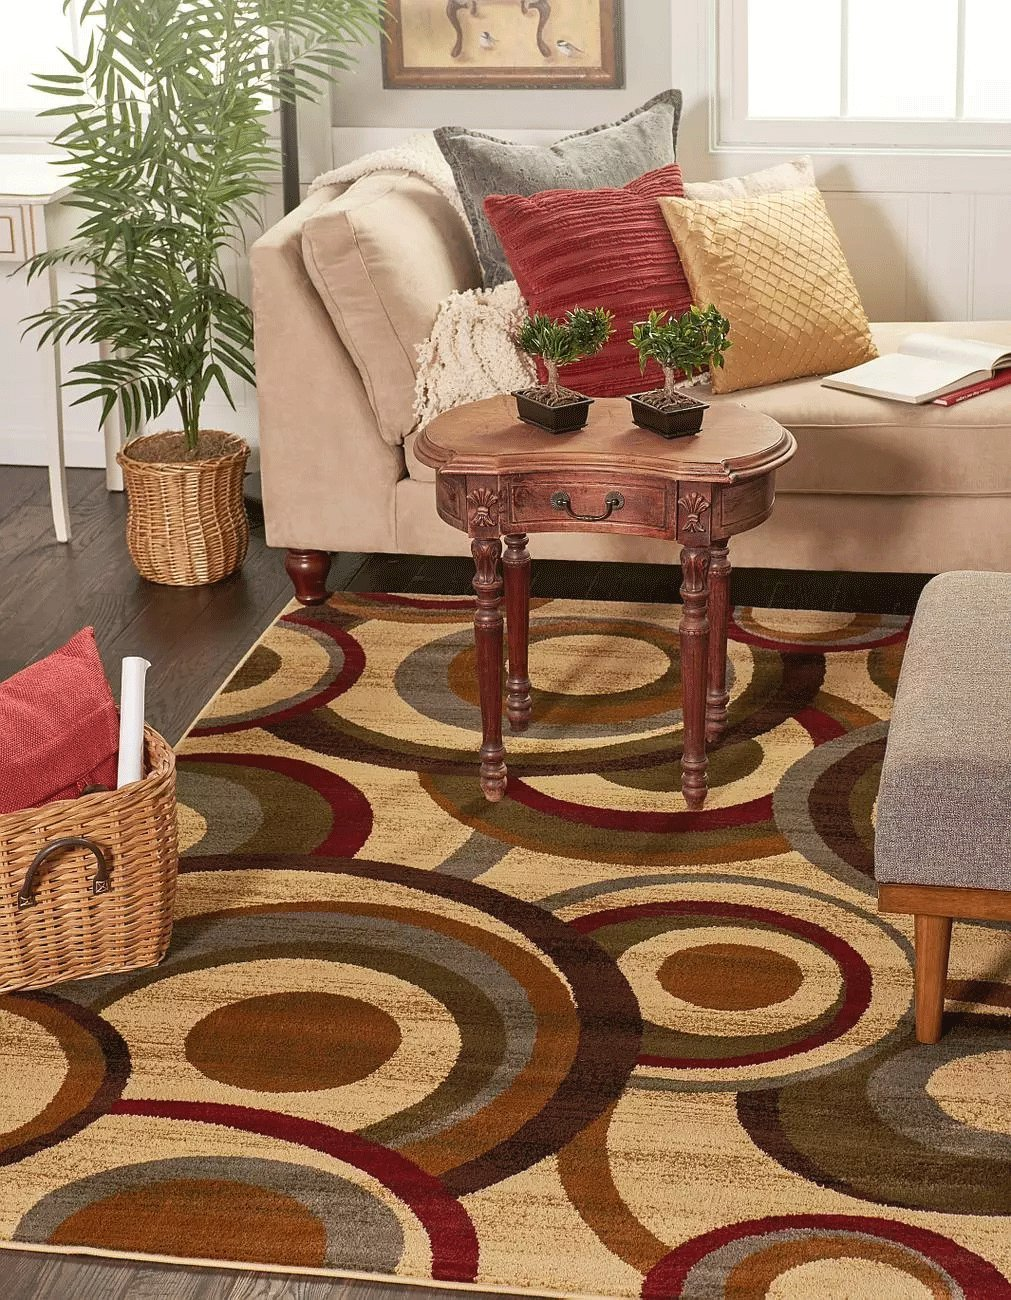 Top 5 Living Room Rugs: Buying Guide & Reviews 2